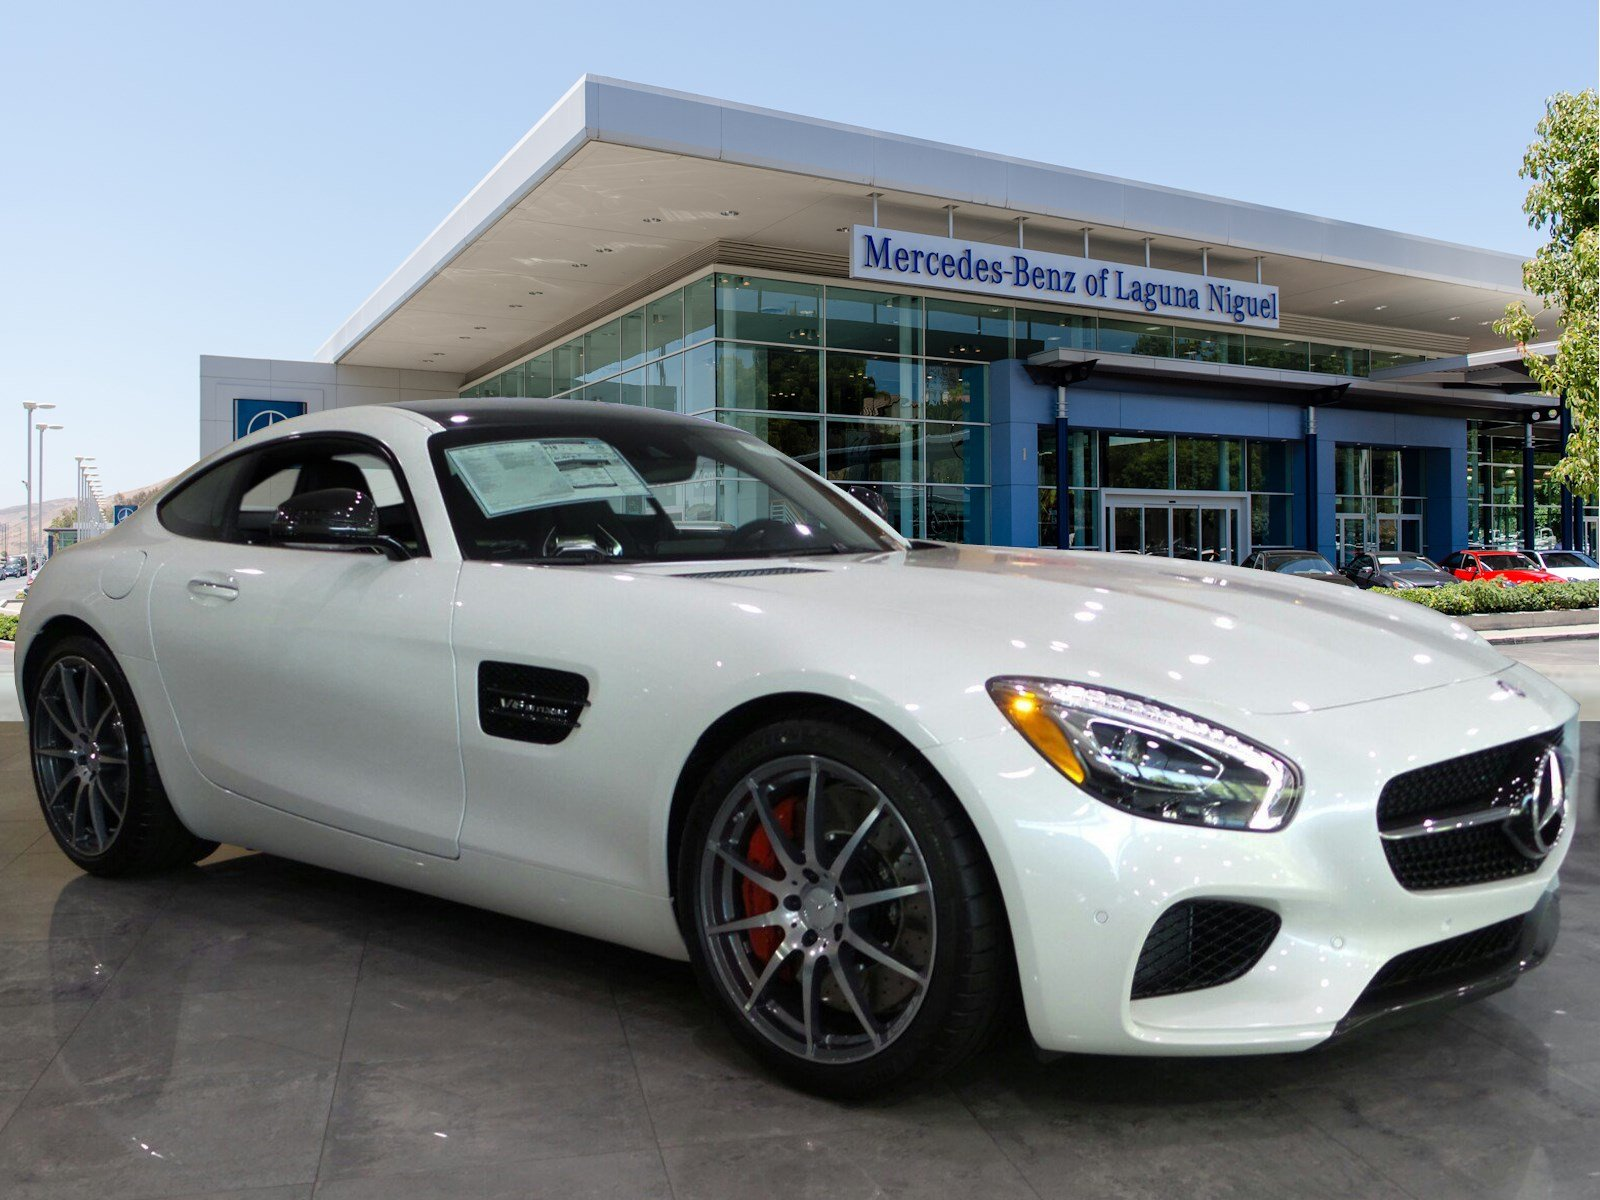 New 2017 mercedes benz amg gt amg gt s coupe in laguna for 2017 mercedes benz amg gt msrp